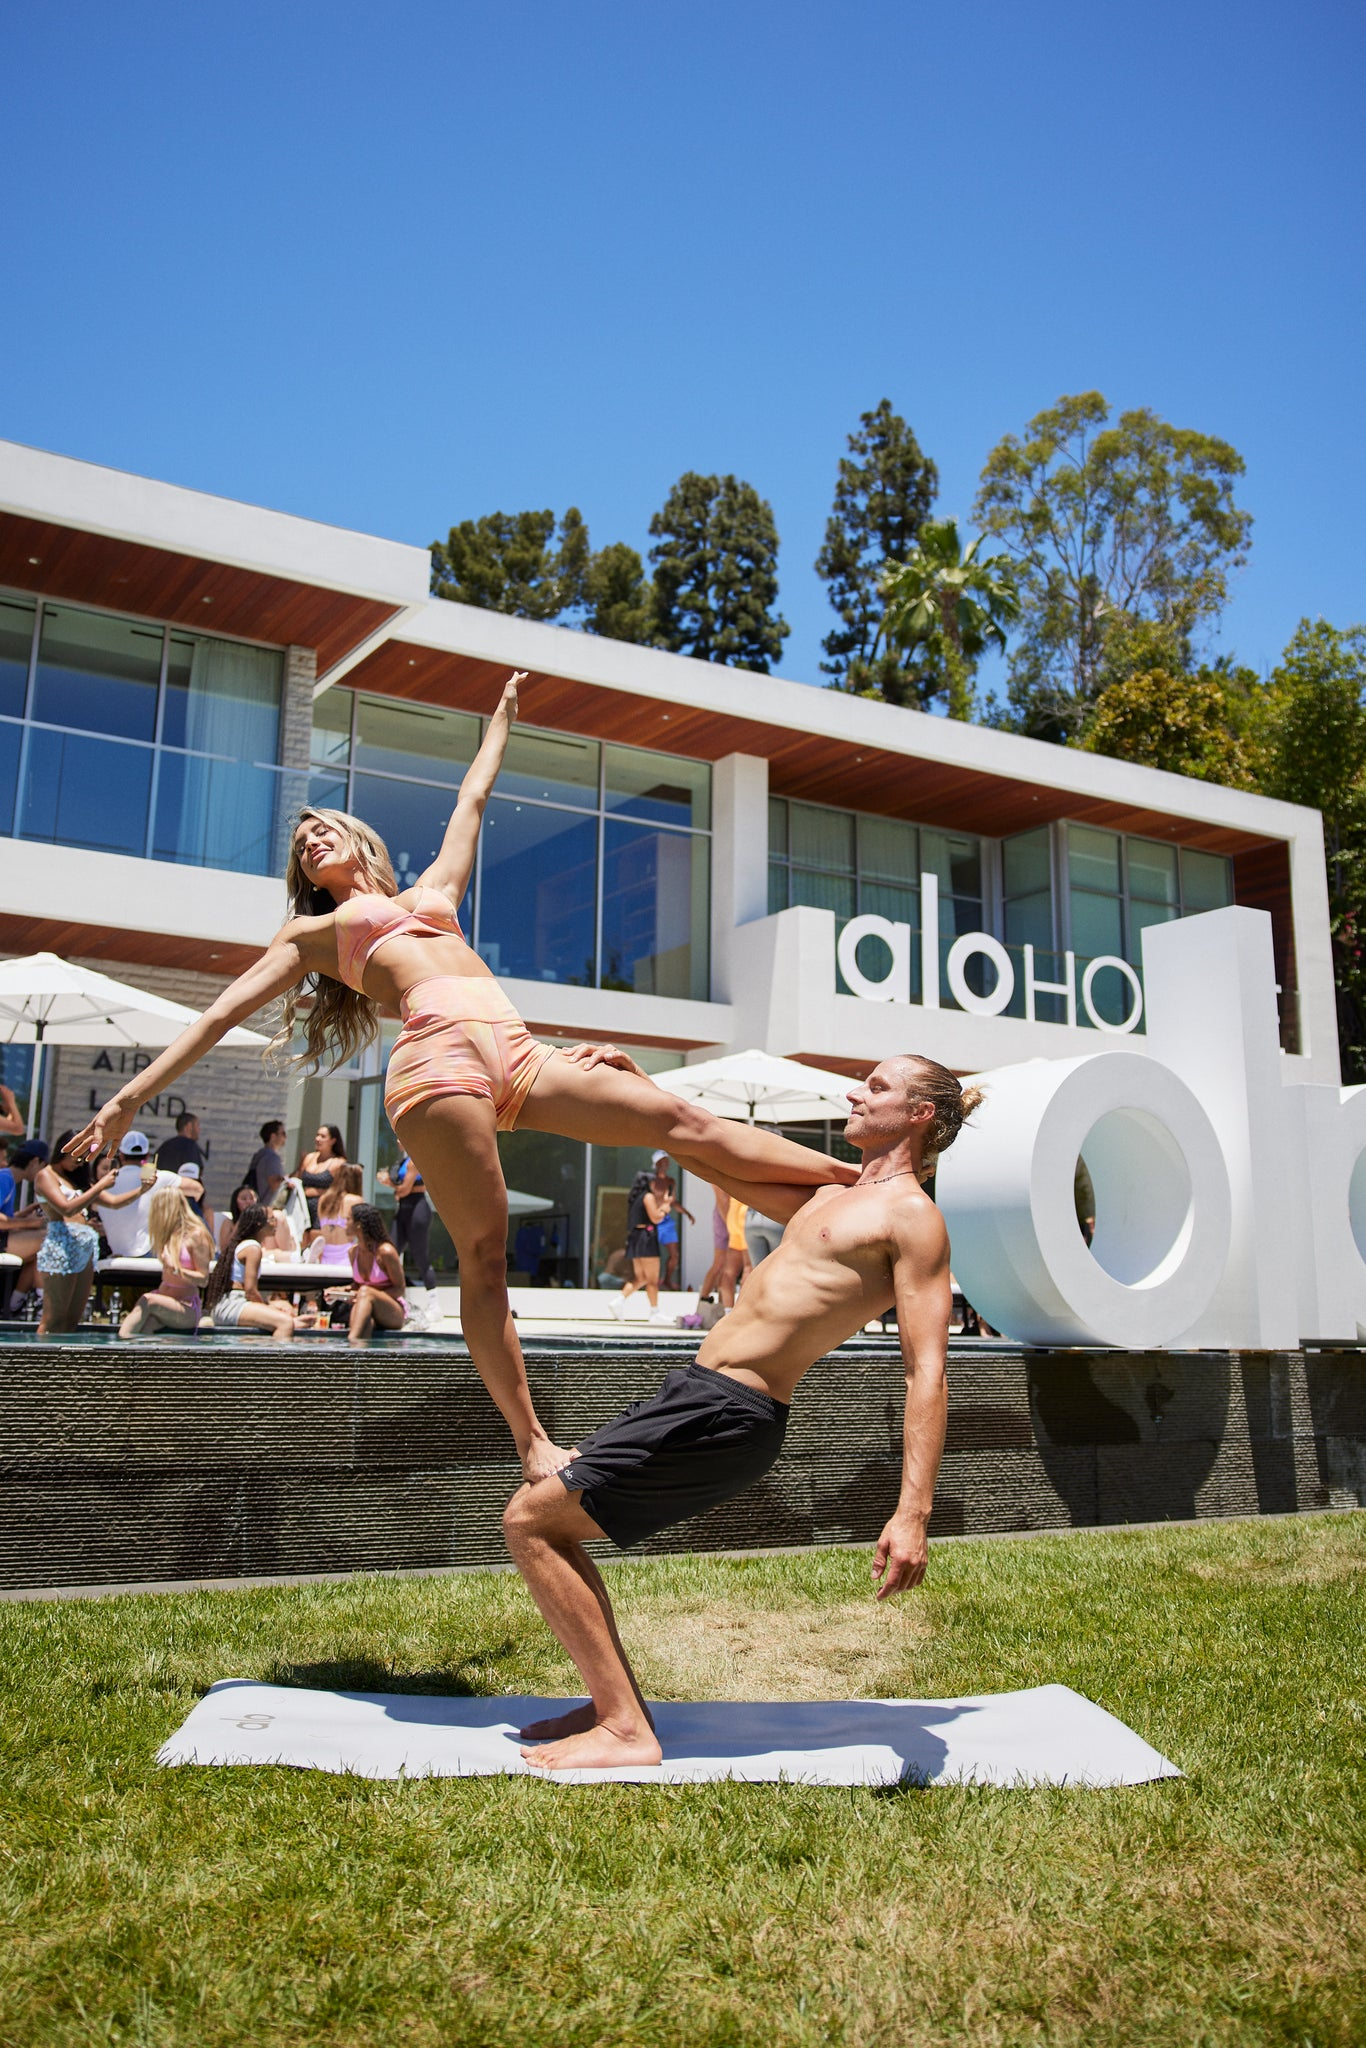 A man and woman practicing acro yoga on the lawn at Alo House.